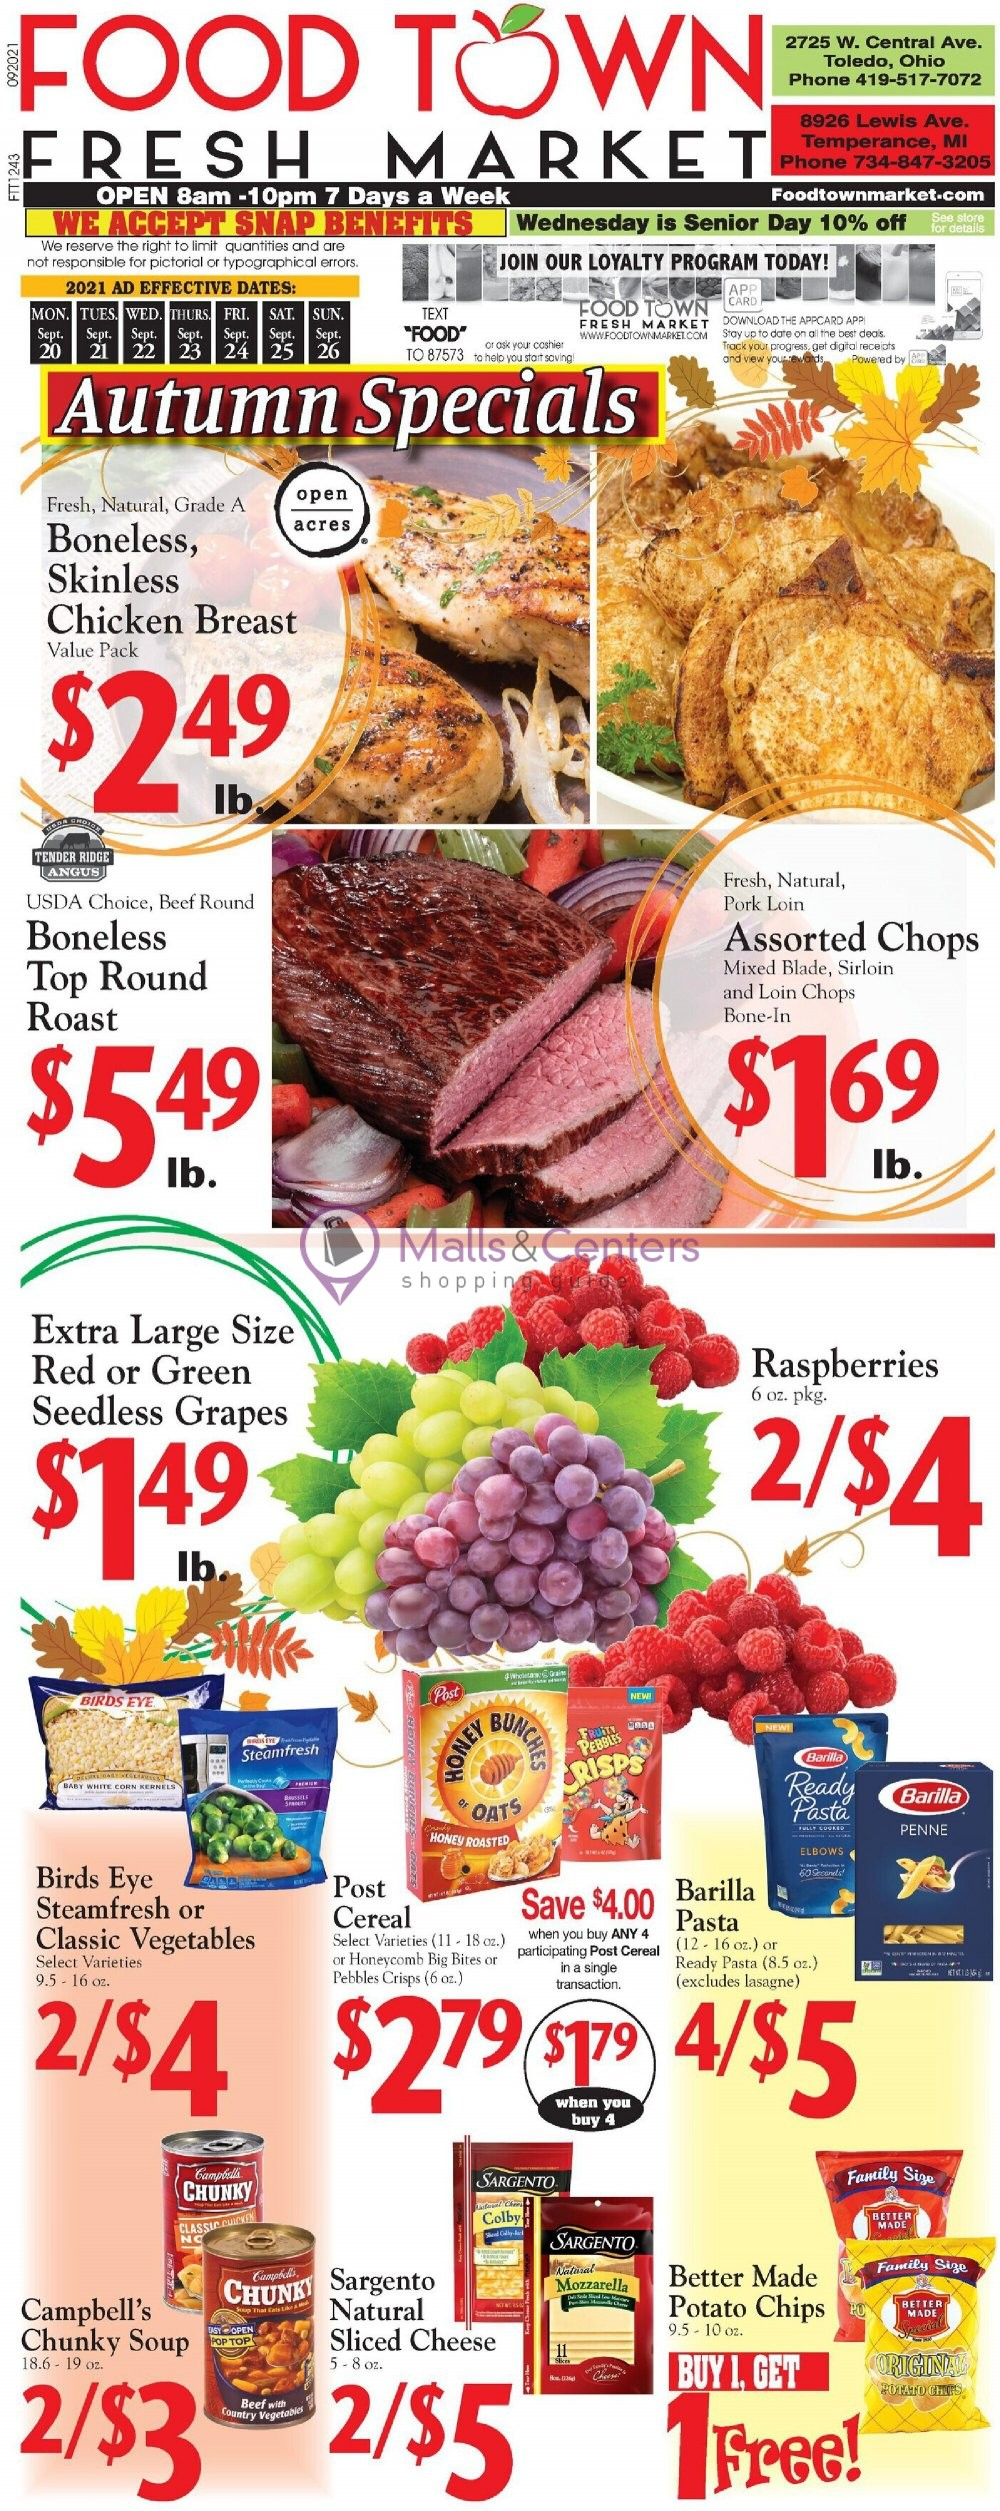 weekly ads Food Town Fresh Market - page 1 - mallscenters.com